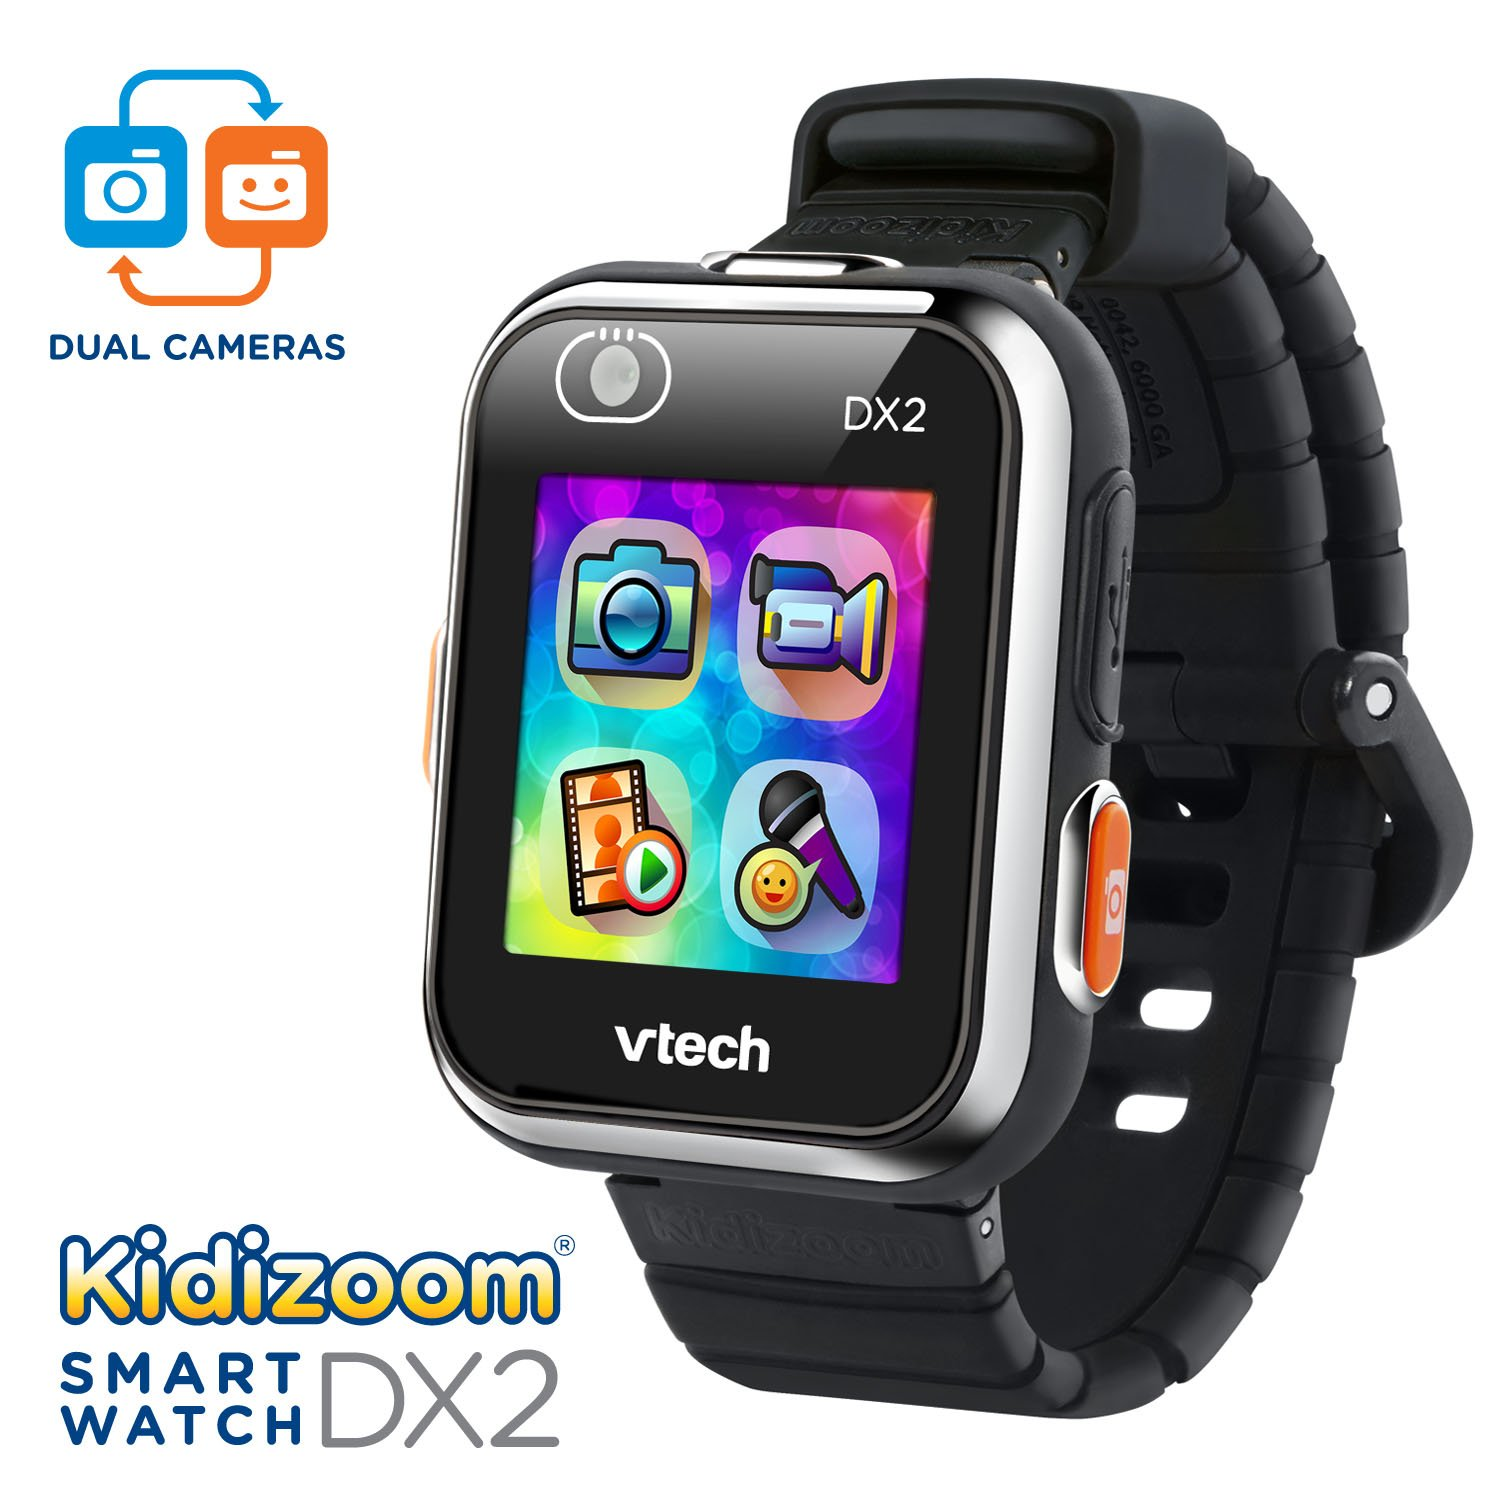 VTech Kidizoom Smartwatch DX2, black (Amazon Exclusive) by VTech